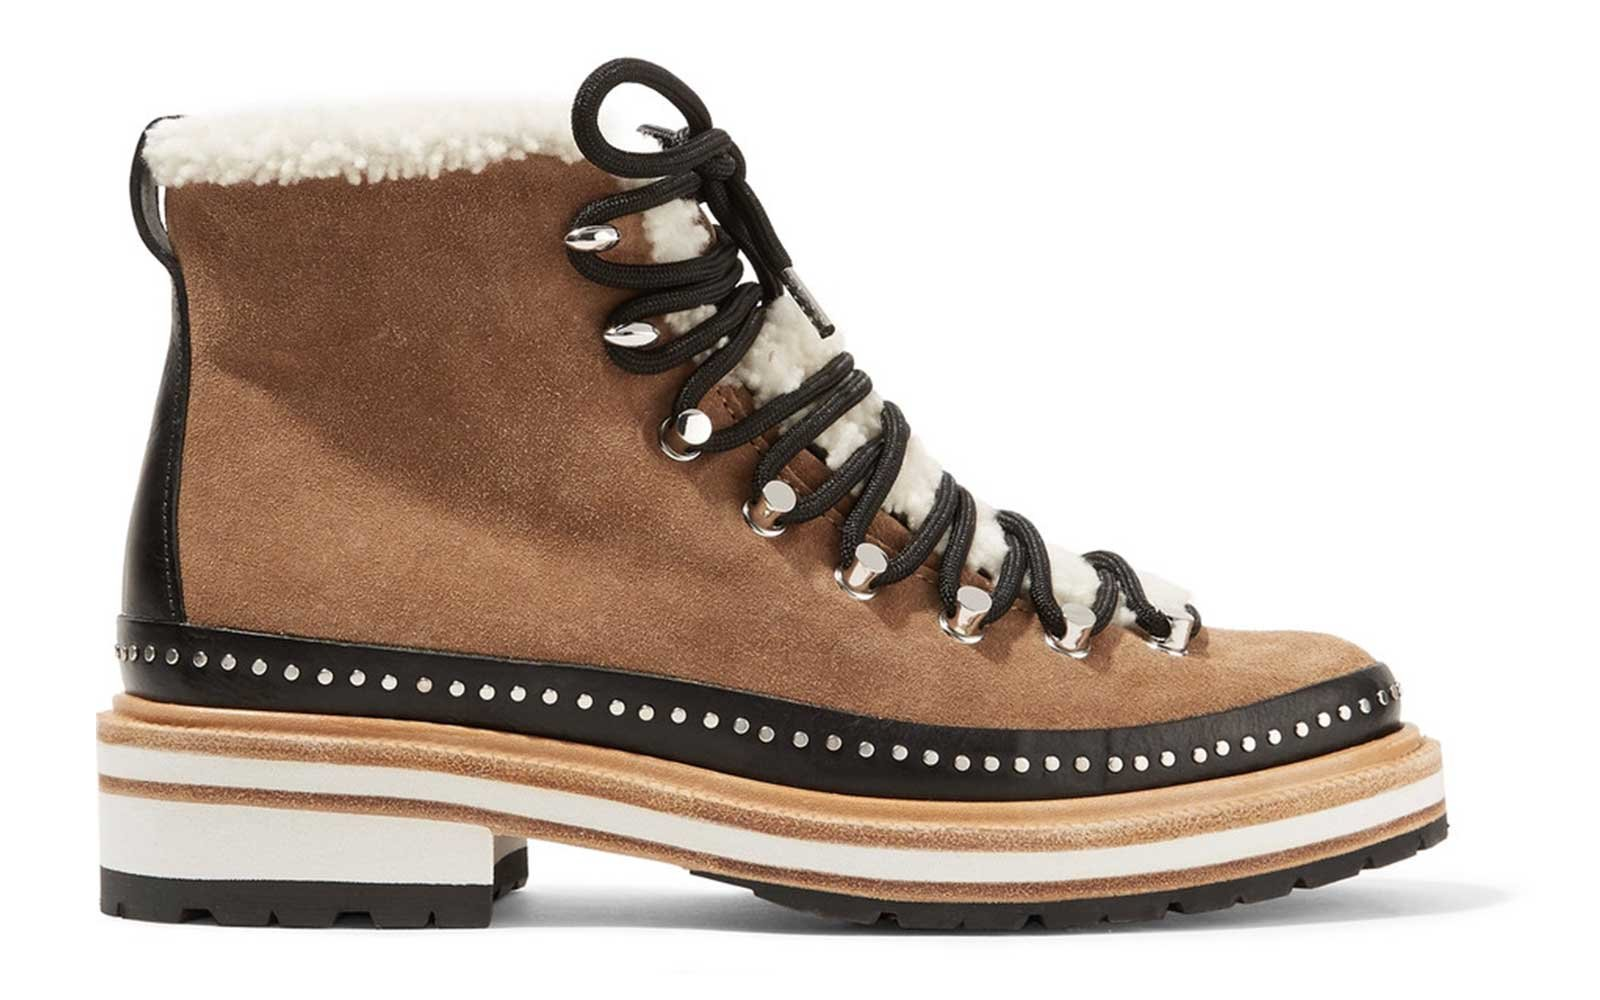 Studded suede and shearling boots by Rag & Bone